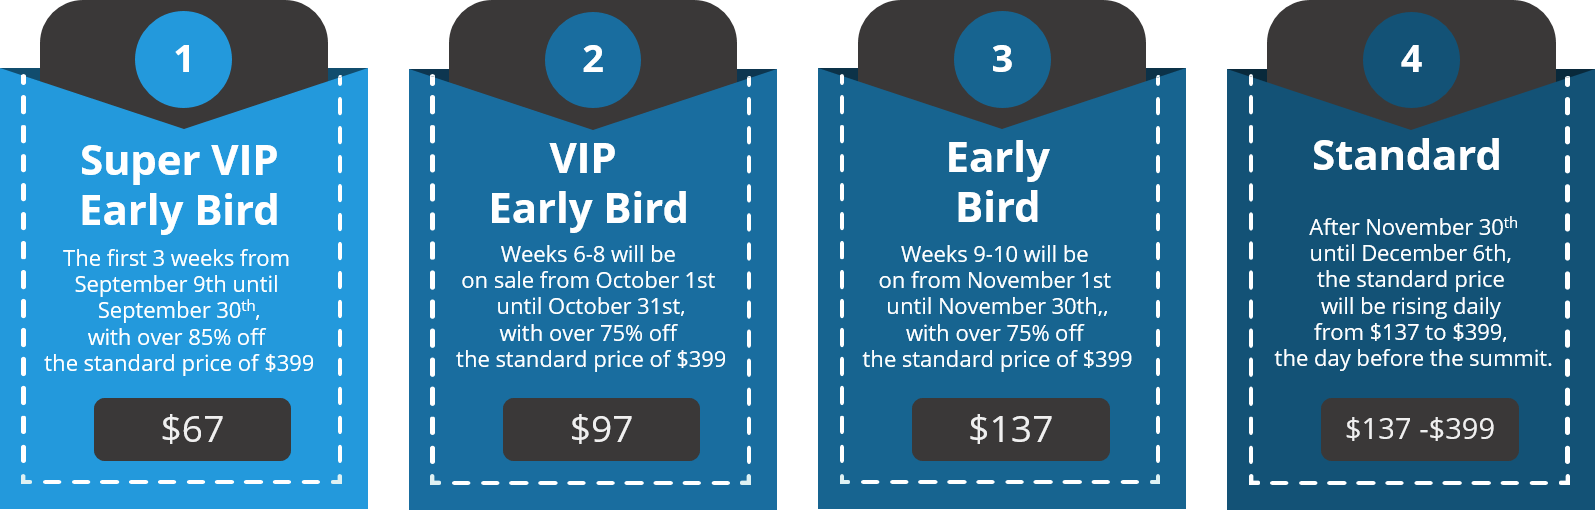 Pricing-Table-IMNetSummit